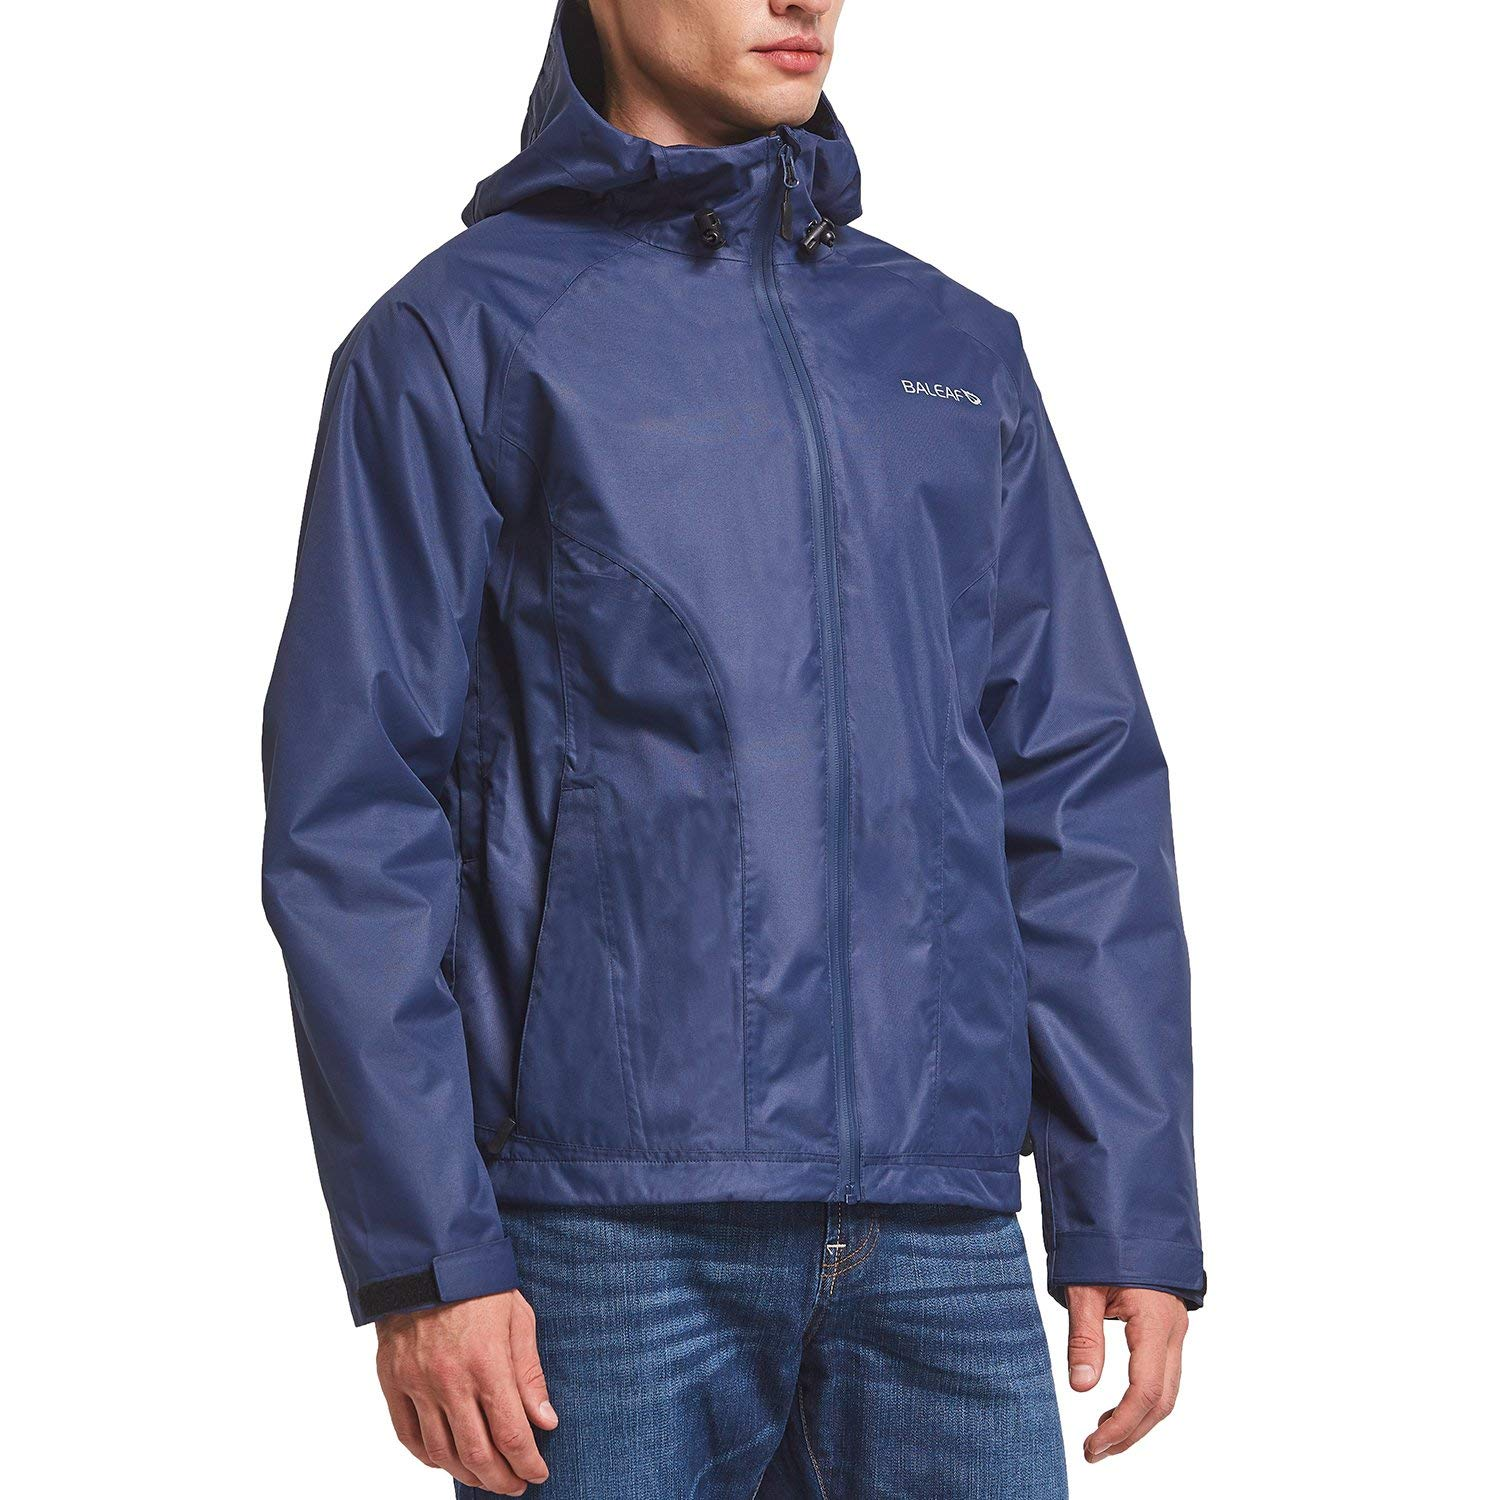 Baleaf Men's Waterproof Rain Jacket Lightweight Windbreaker Breathable 3K/3K for Hiking, Climbing, Camping, Mountaineering Navy Size 2XL by Baleaf